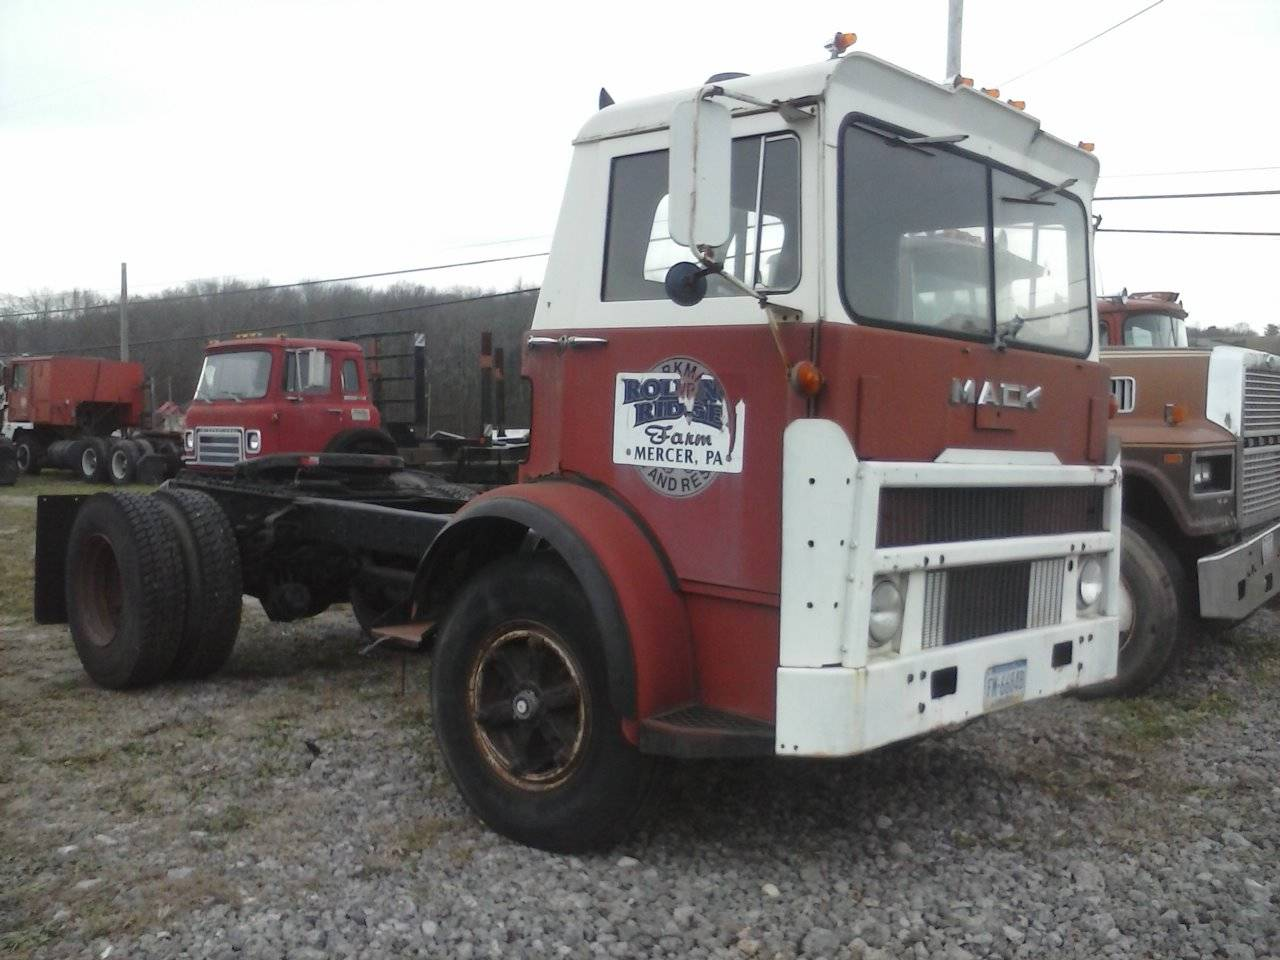 1973 Mack Tractor Truck : Mack mb tractor trucks for sale bigmacktrucks